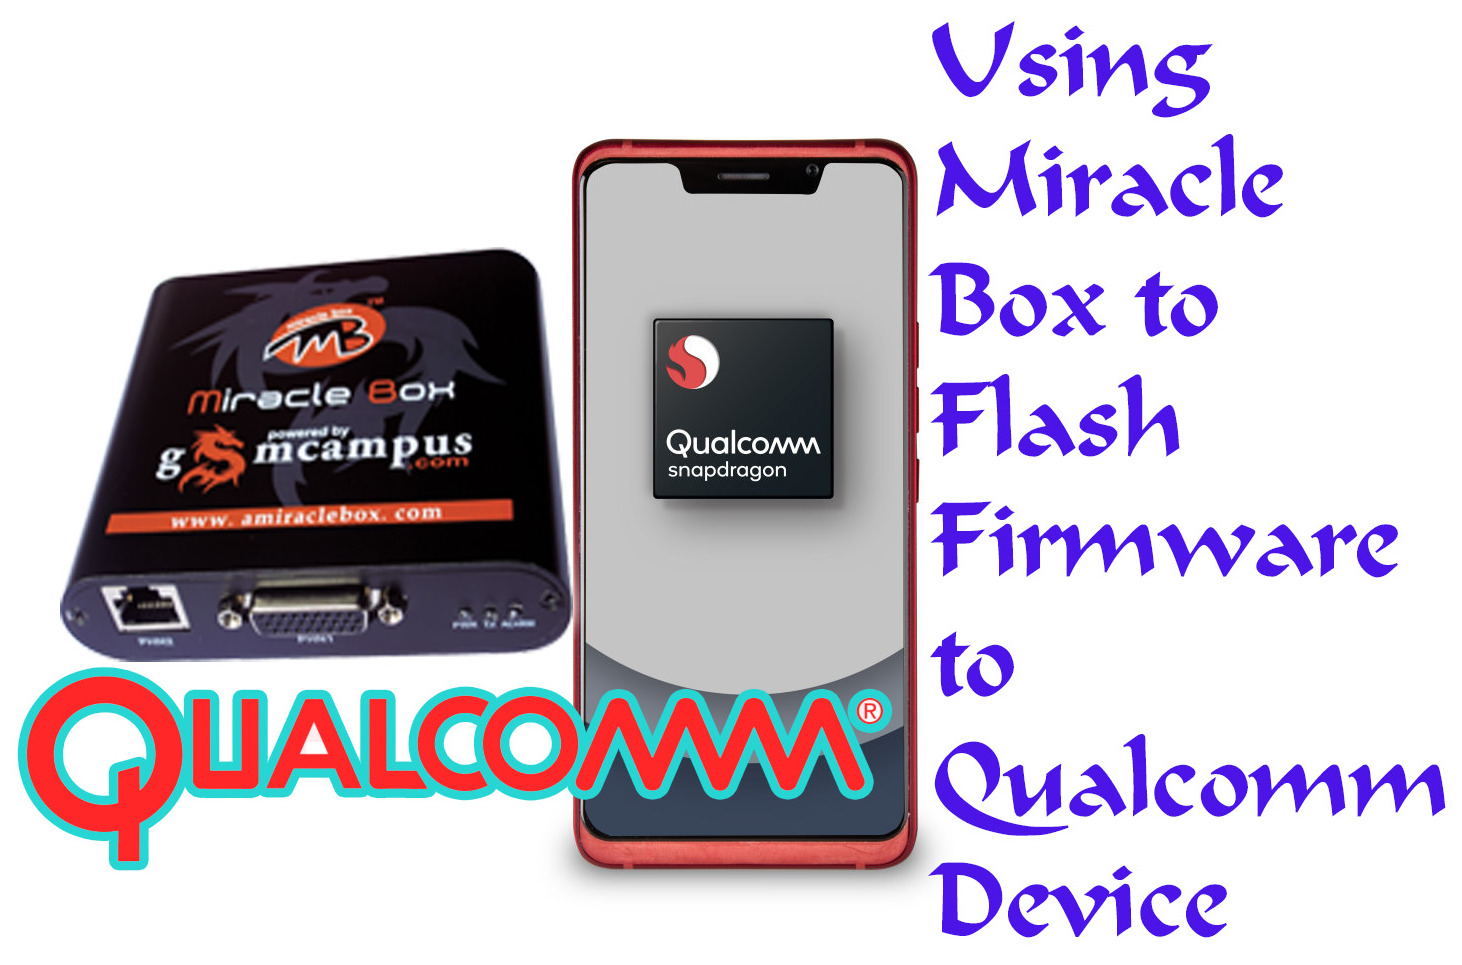 How to use Miracle box to flash firmware to Qualcomm devices